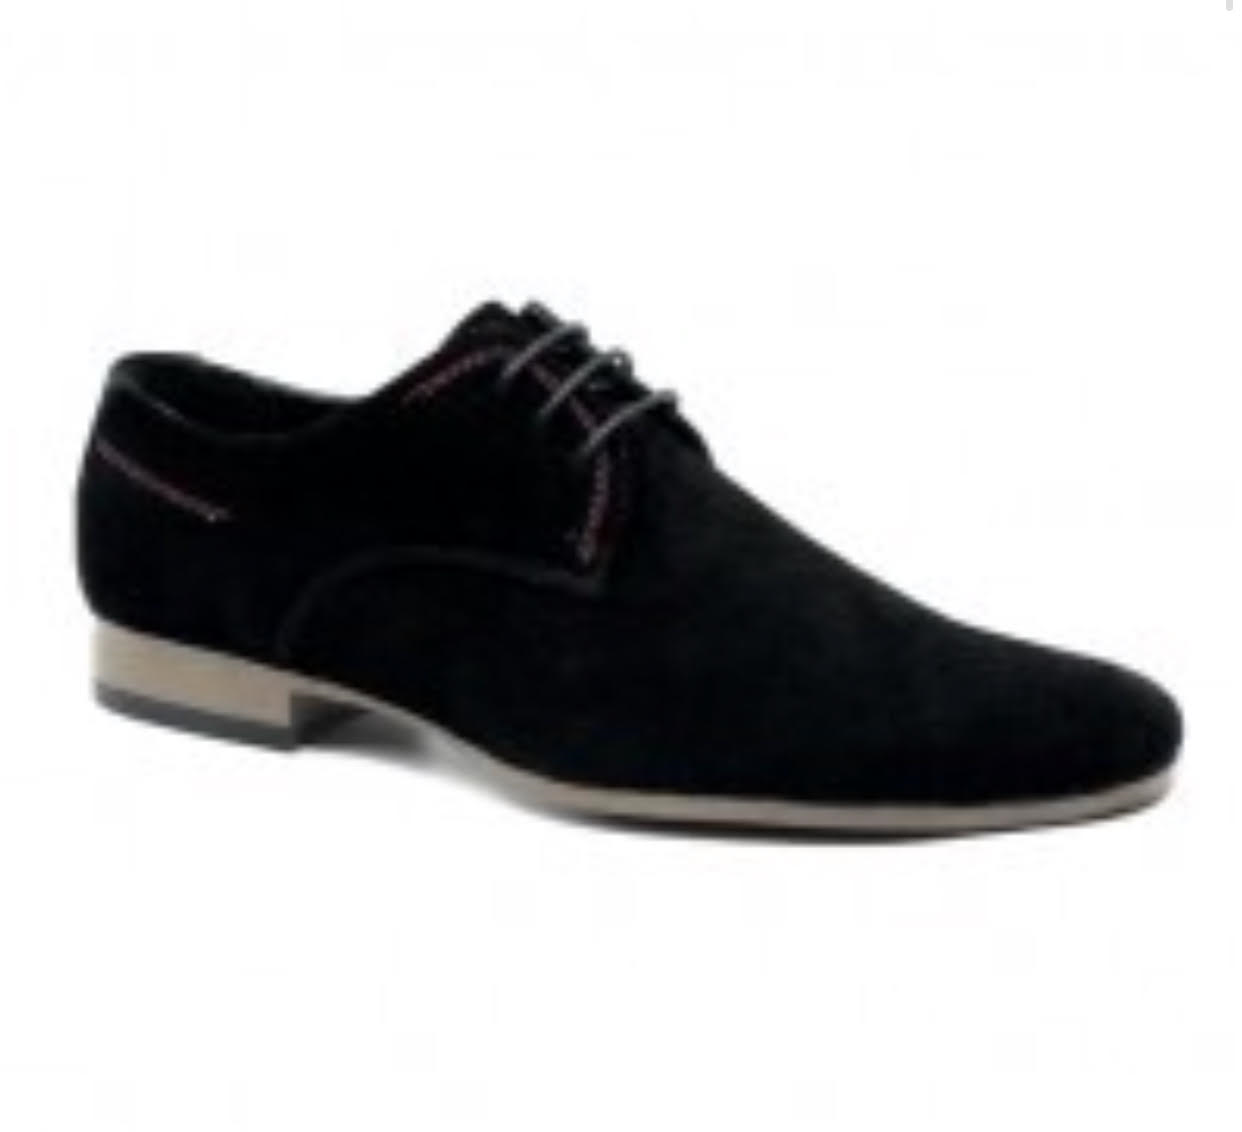 Menswear Men's Shoes - Black Suede Casual Shoes